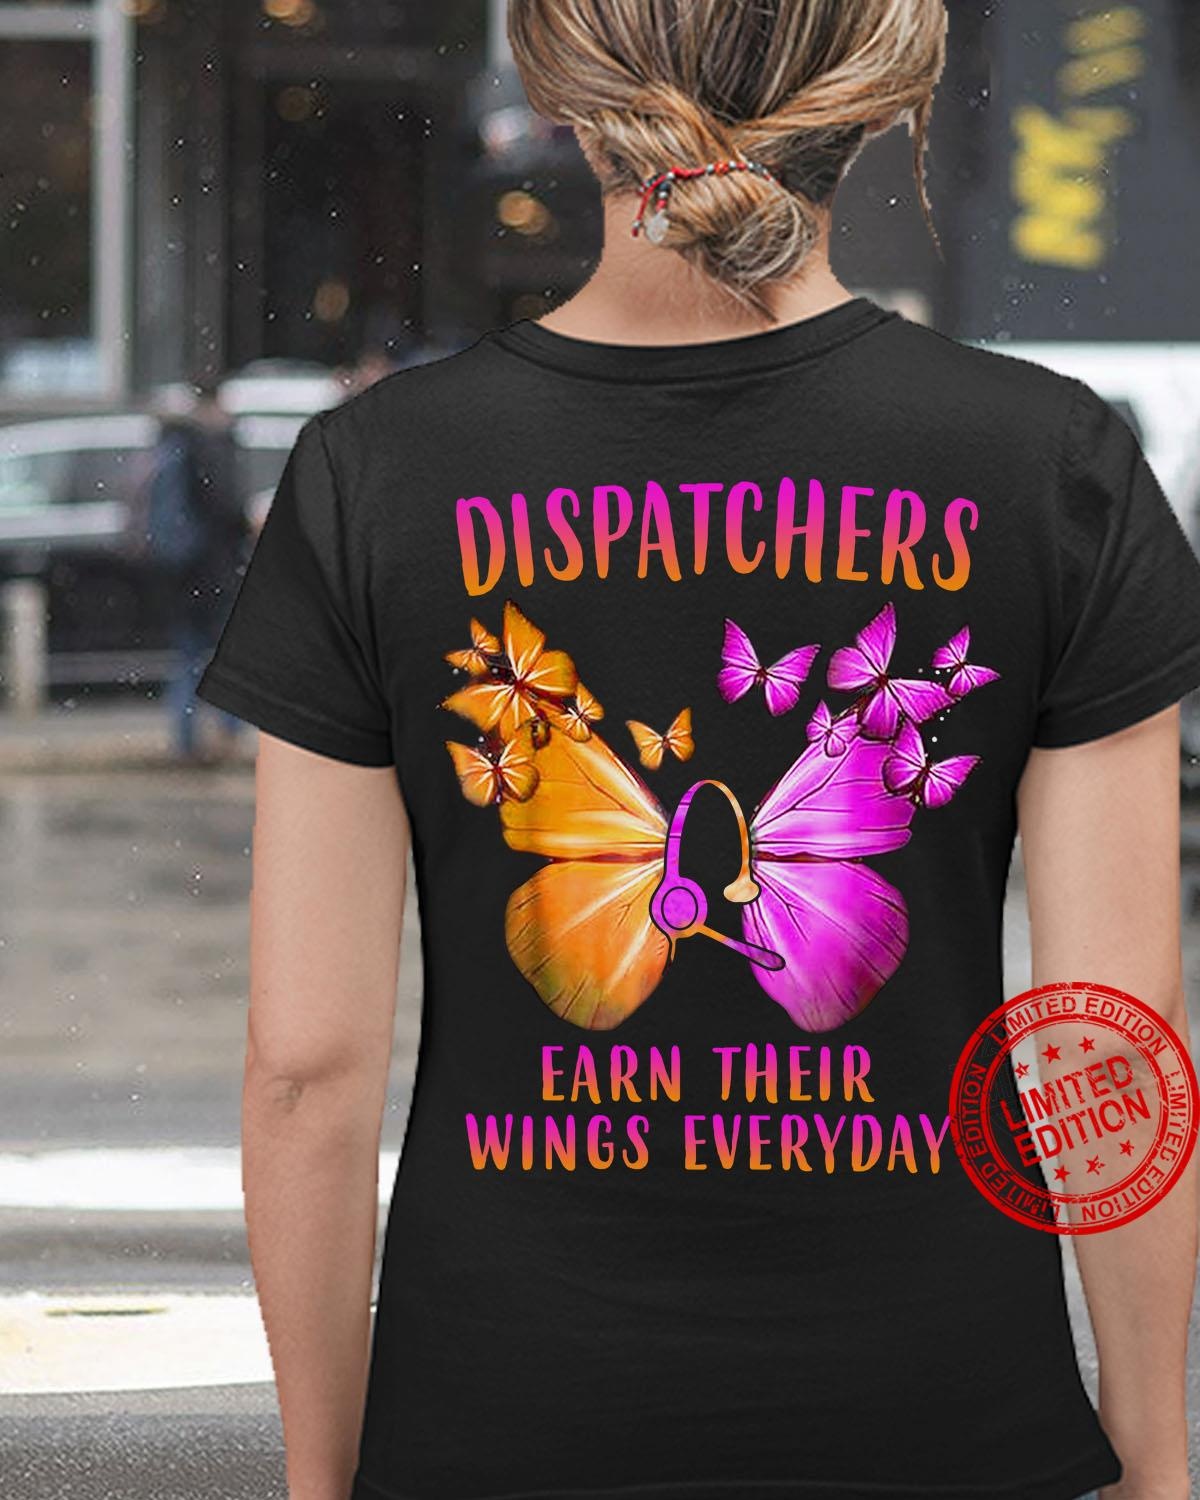 Dispatchers Earn Their Wings Everyday Shirt